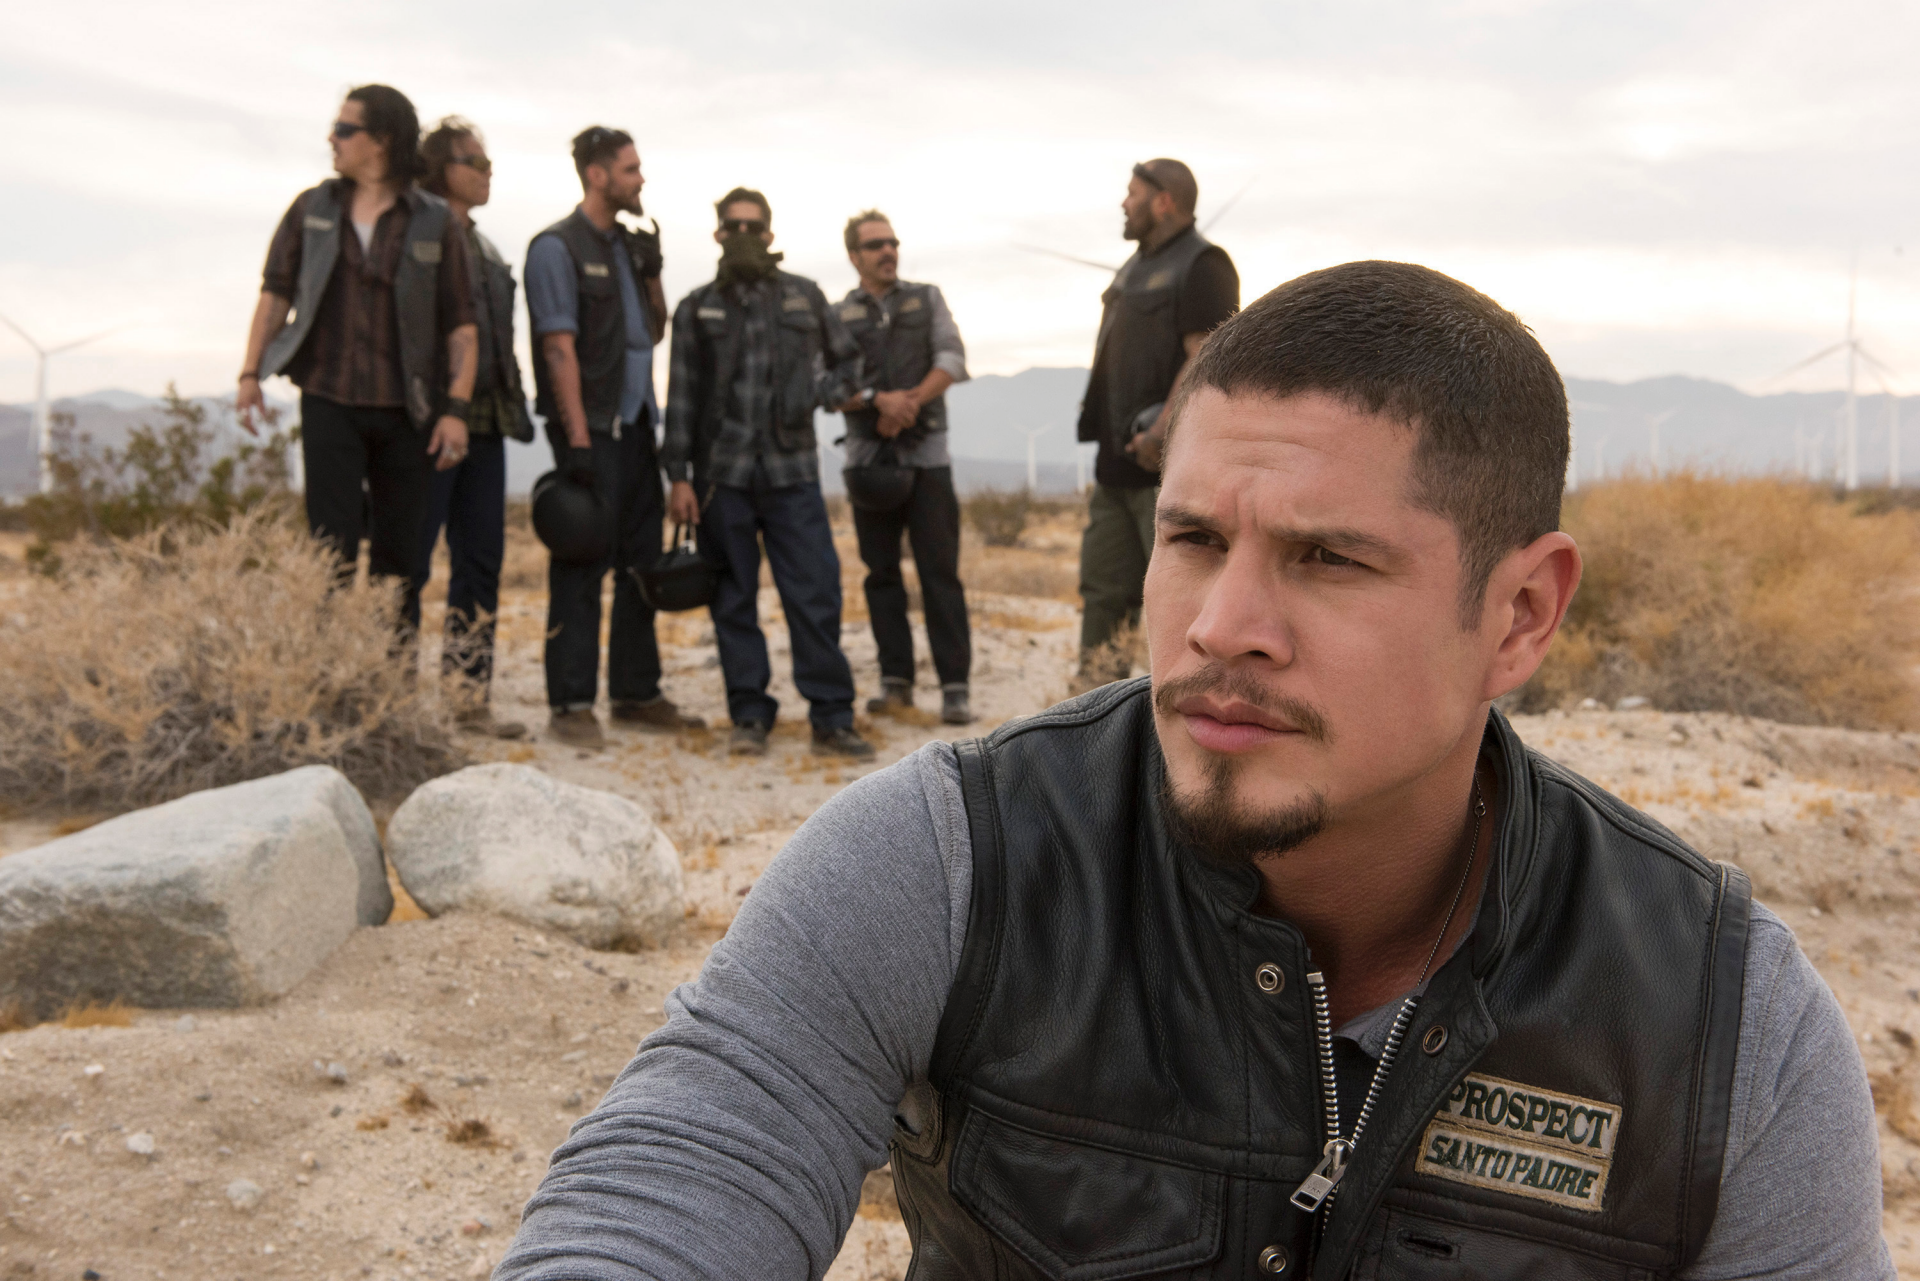 'Sons of Anarchy' spinoff 'Mayans M.C.'